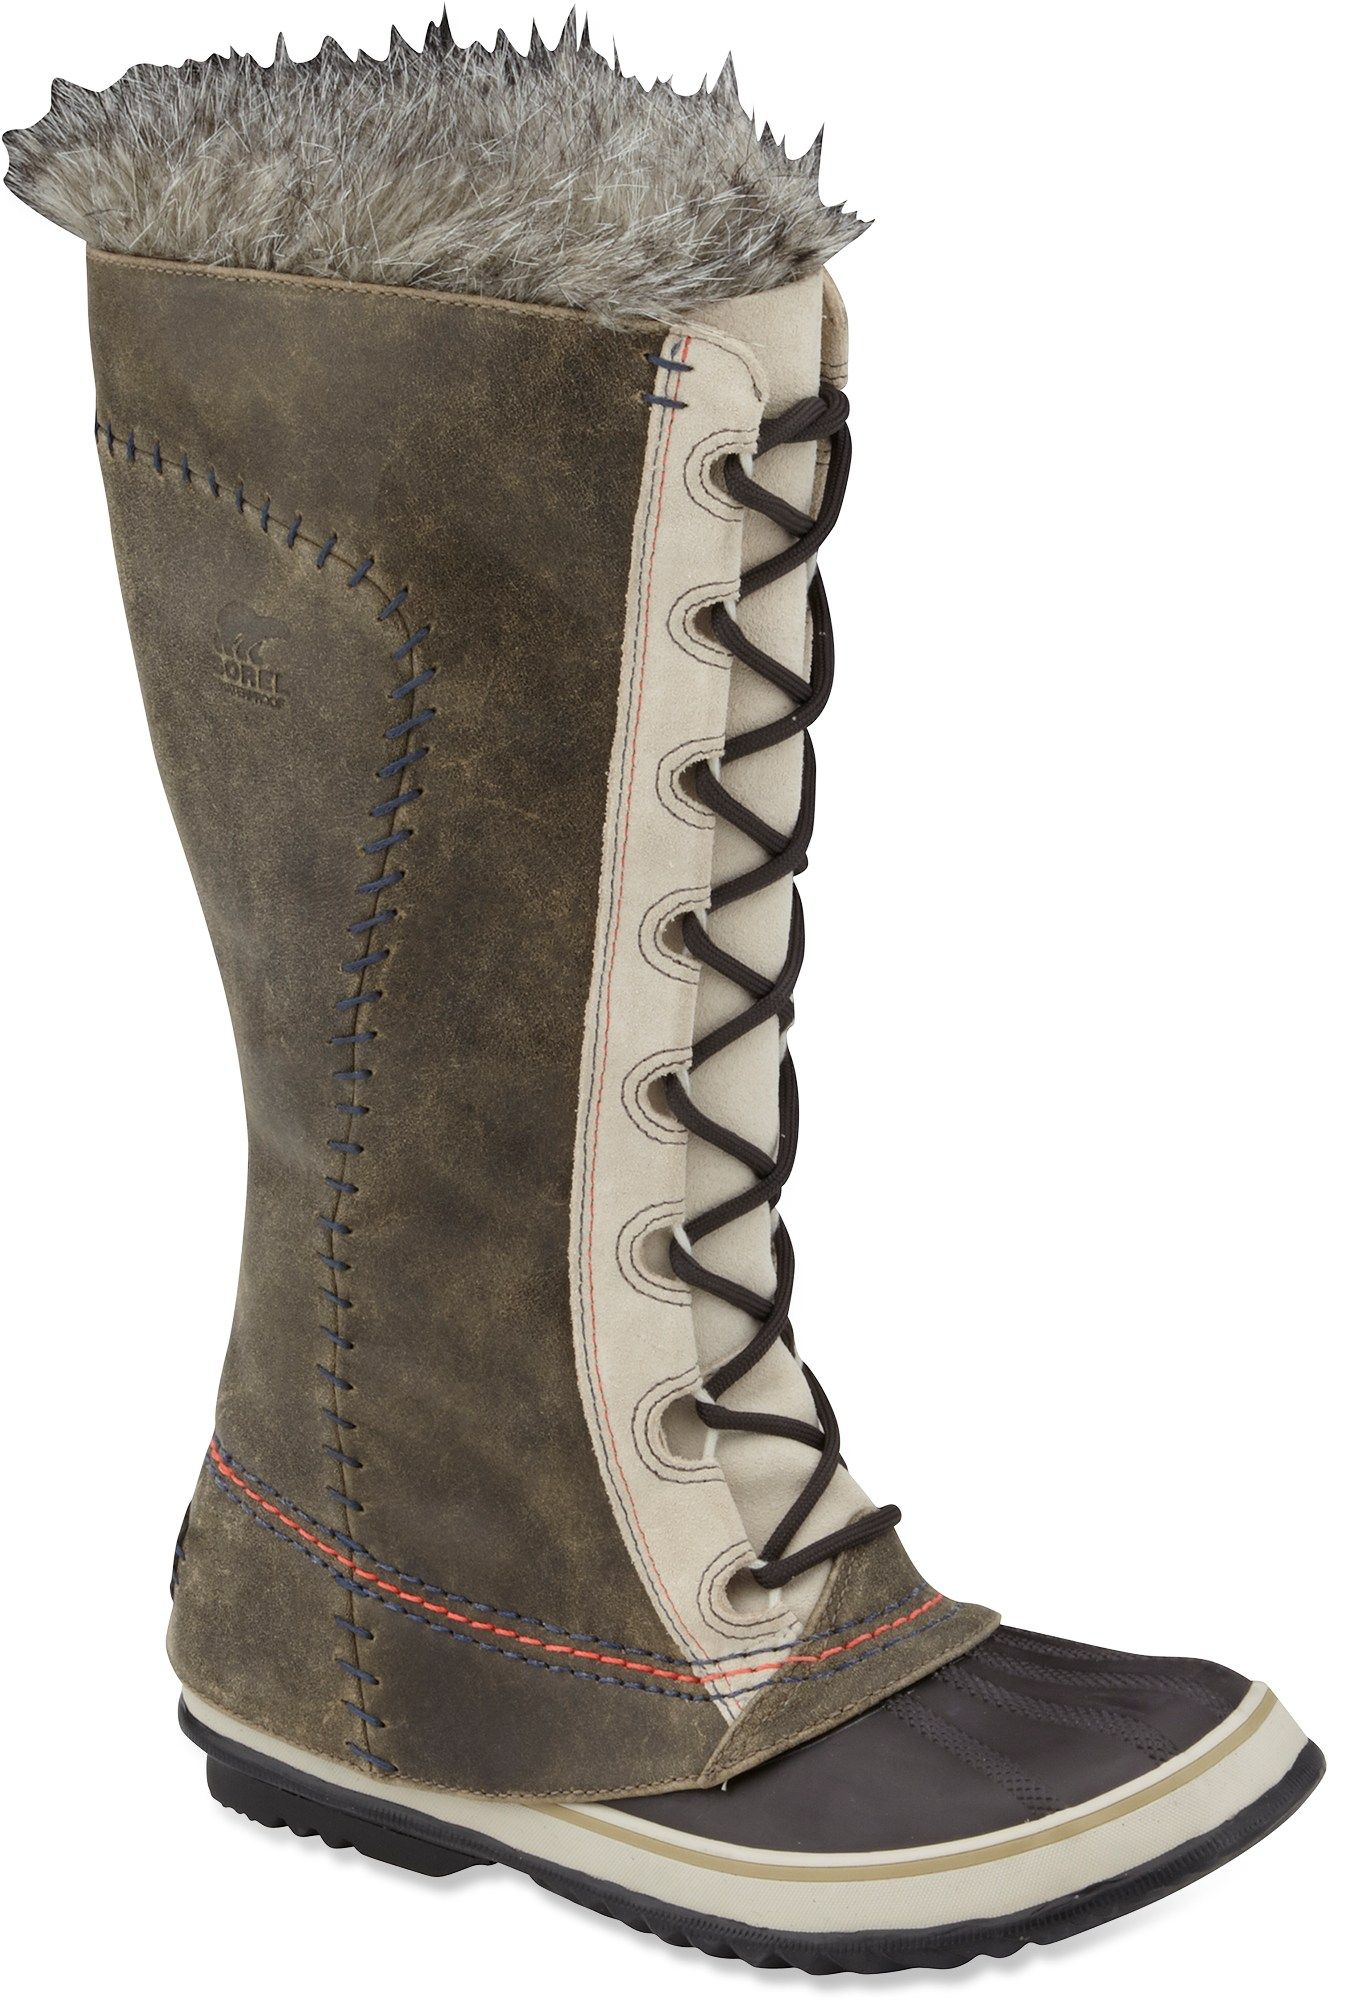 Sorel Cate The Great Deco Winter Boots Women S Rei Co Op Boots Sorel Boots Womens Winter Boots Women